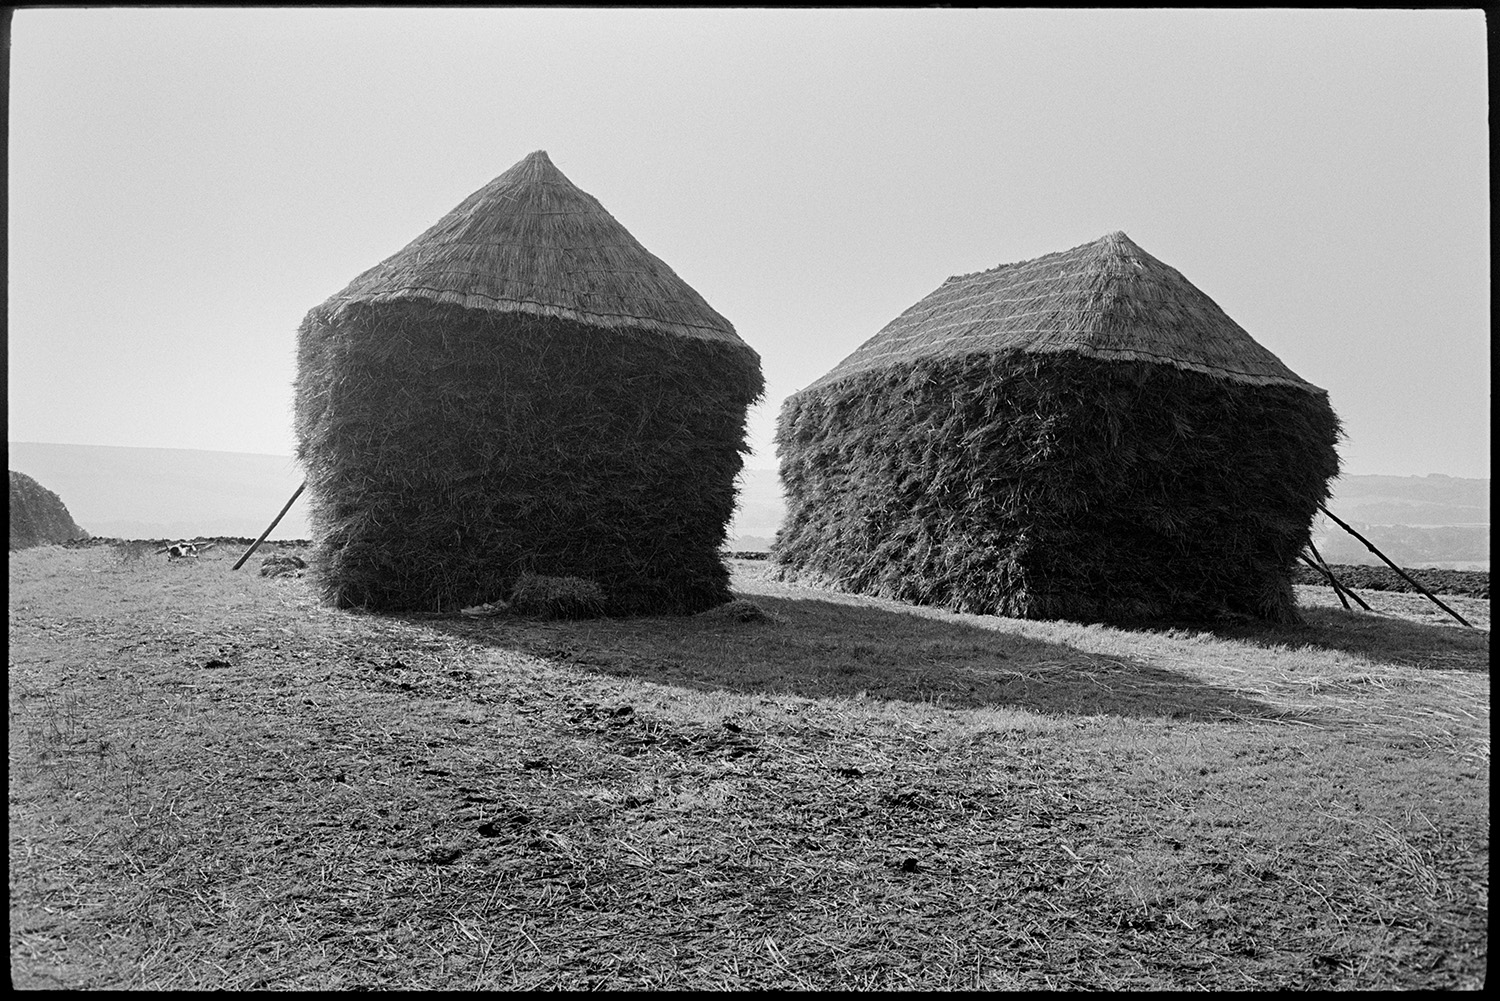 Two wheat ricks, early light. <br /> [One round and one square wheat rick in a field near Winkleigh, in the early morning. Both ricks are thatched and have branches propped against them.]